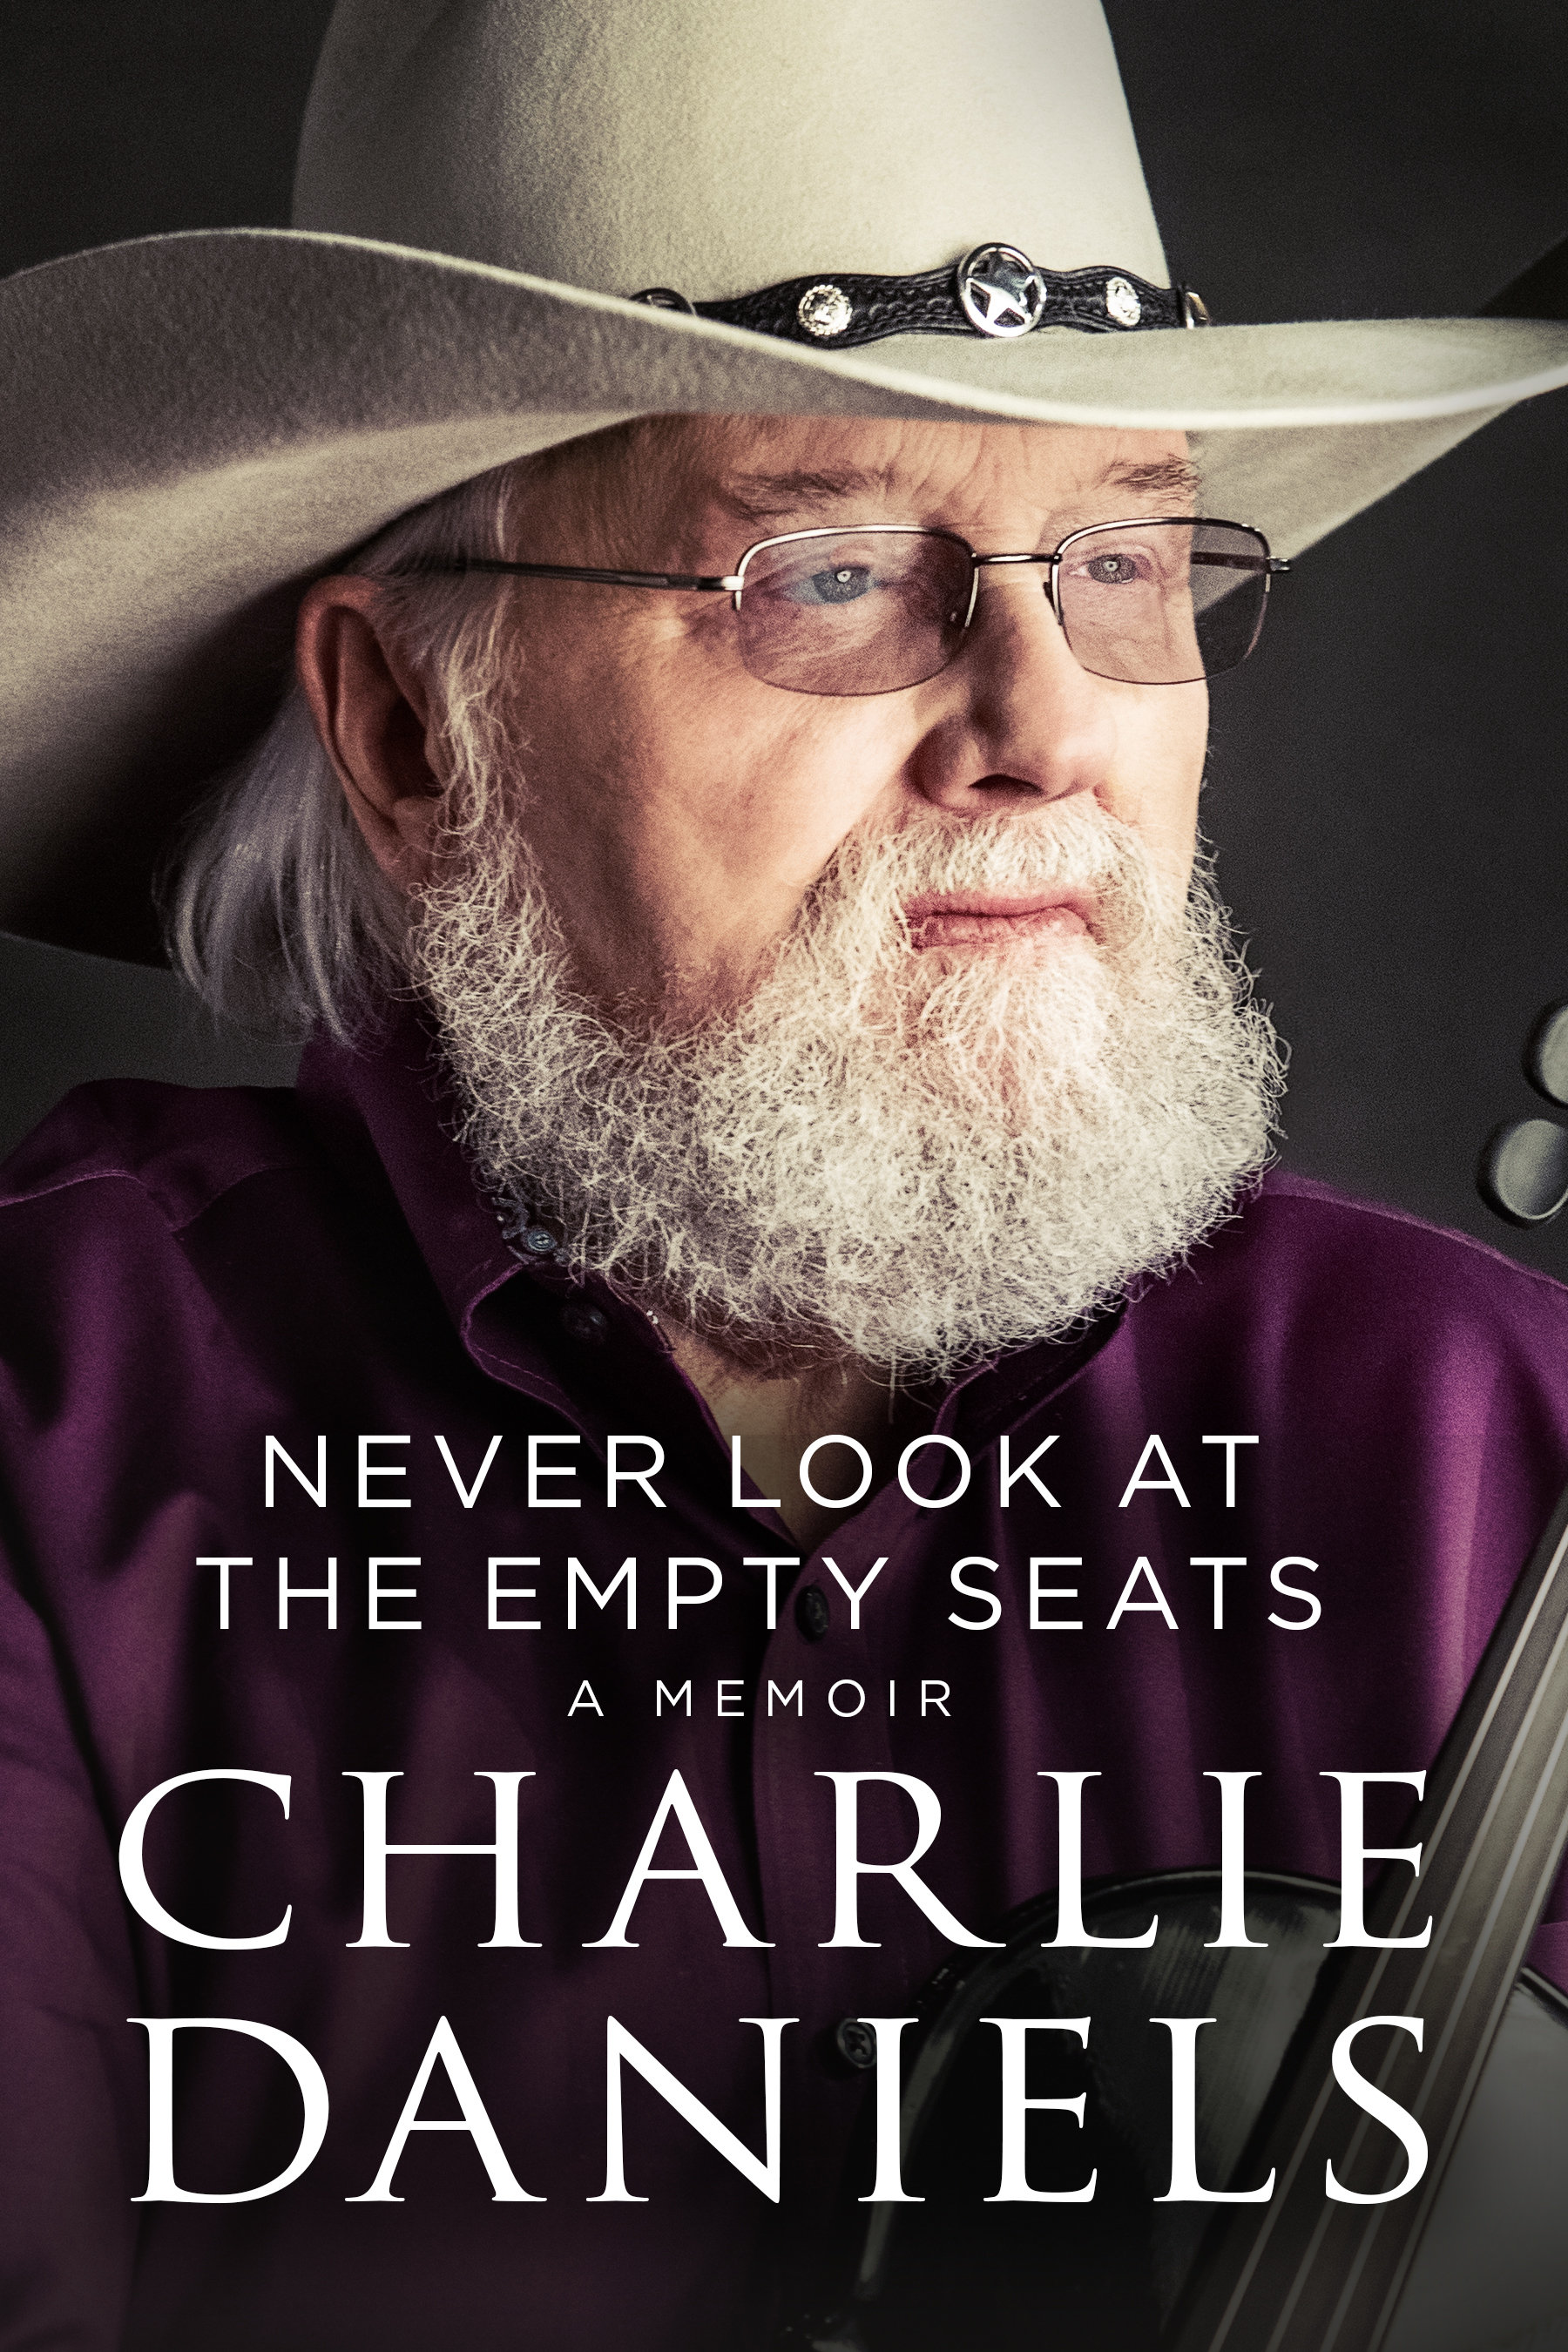 charlie daniels essay Charlie daniels turns 80 today he is still producing top quality music and is still an iconic symbol of the south and the southern musical tradition.